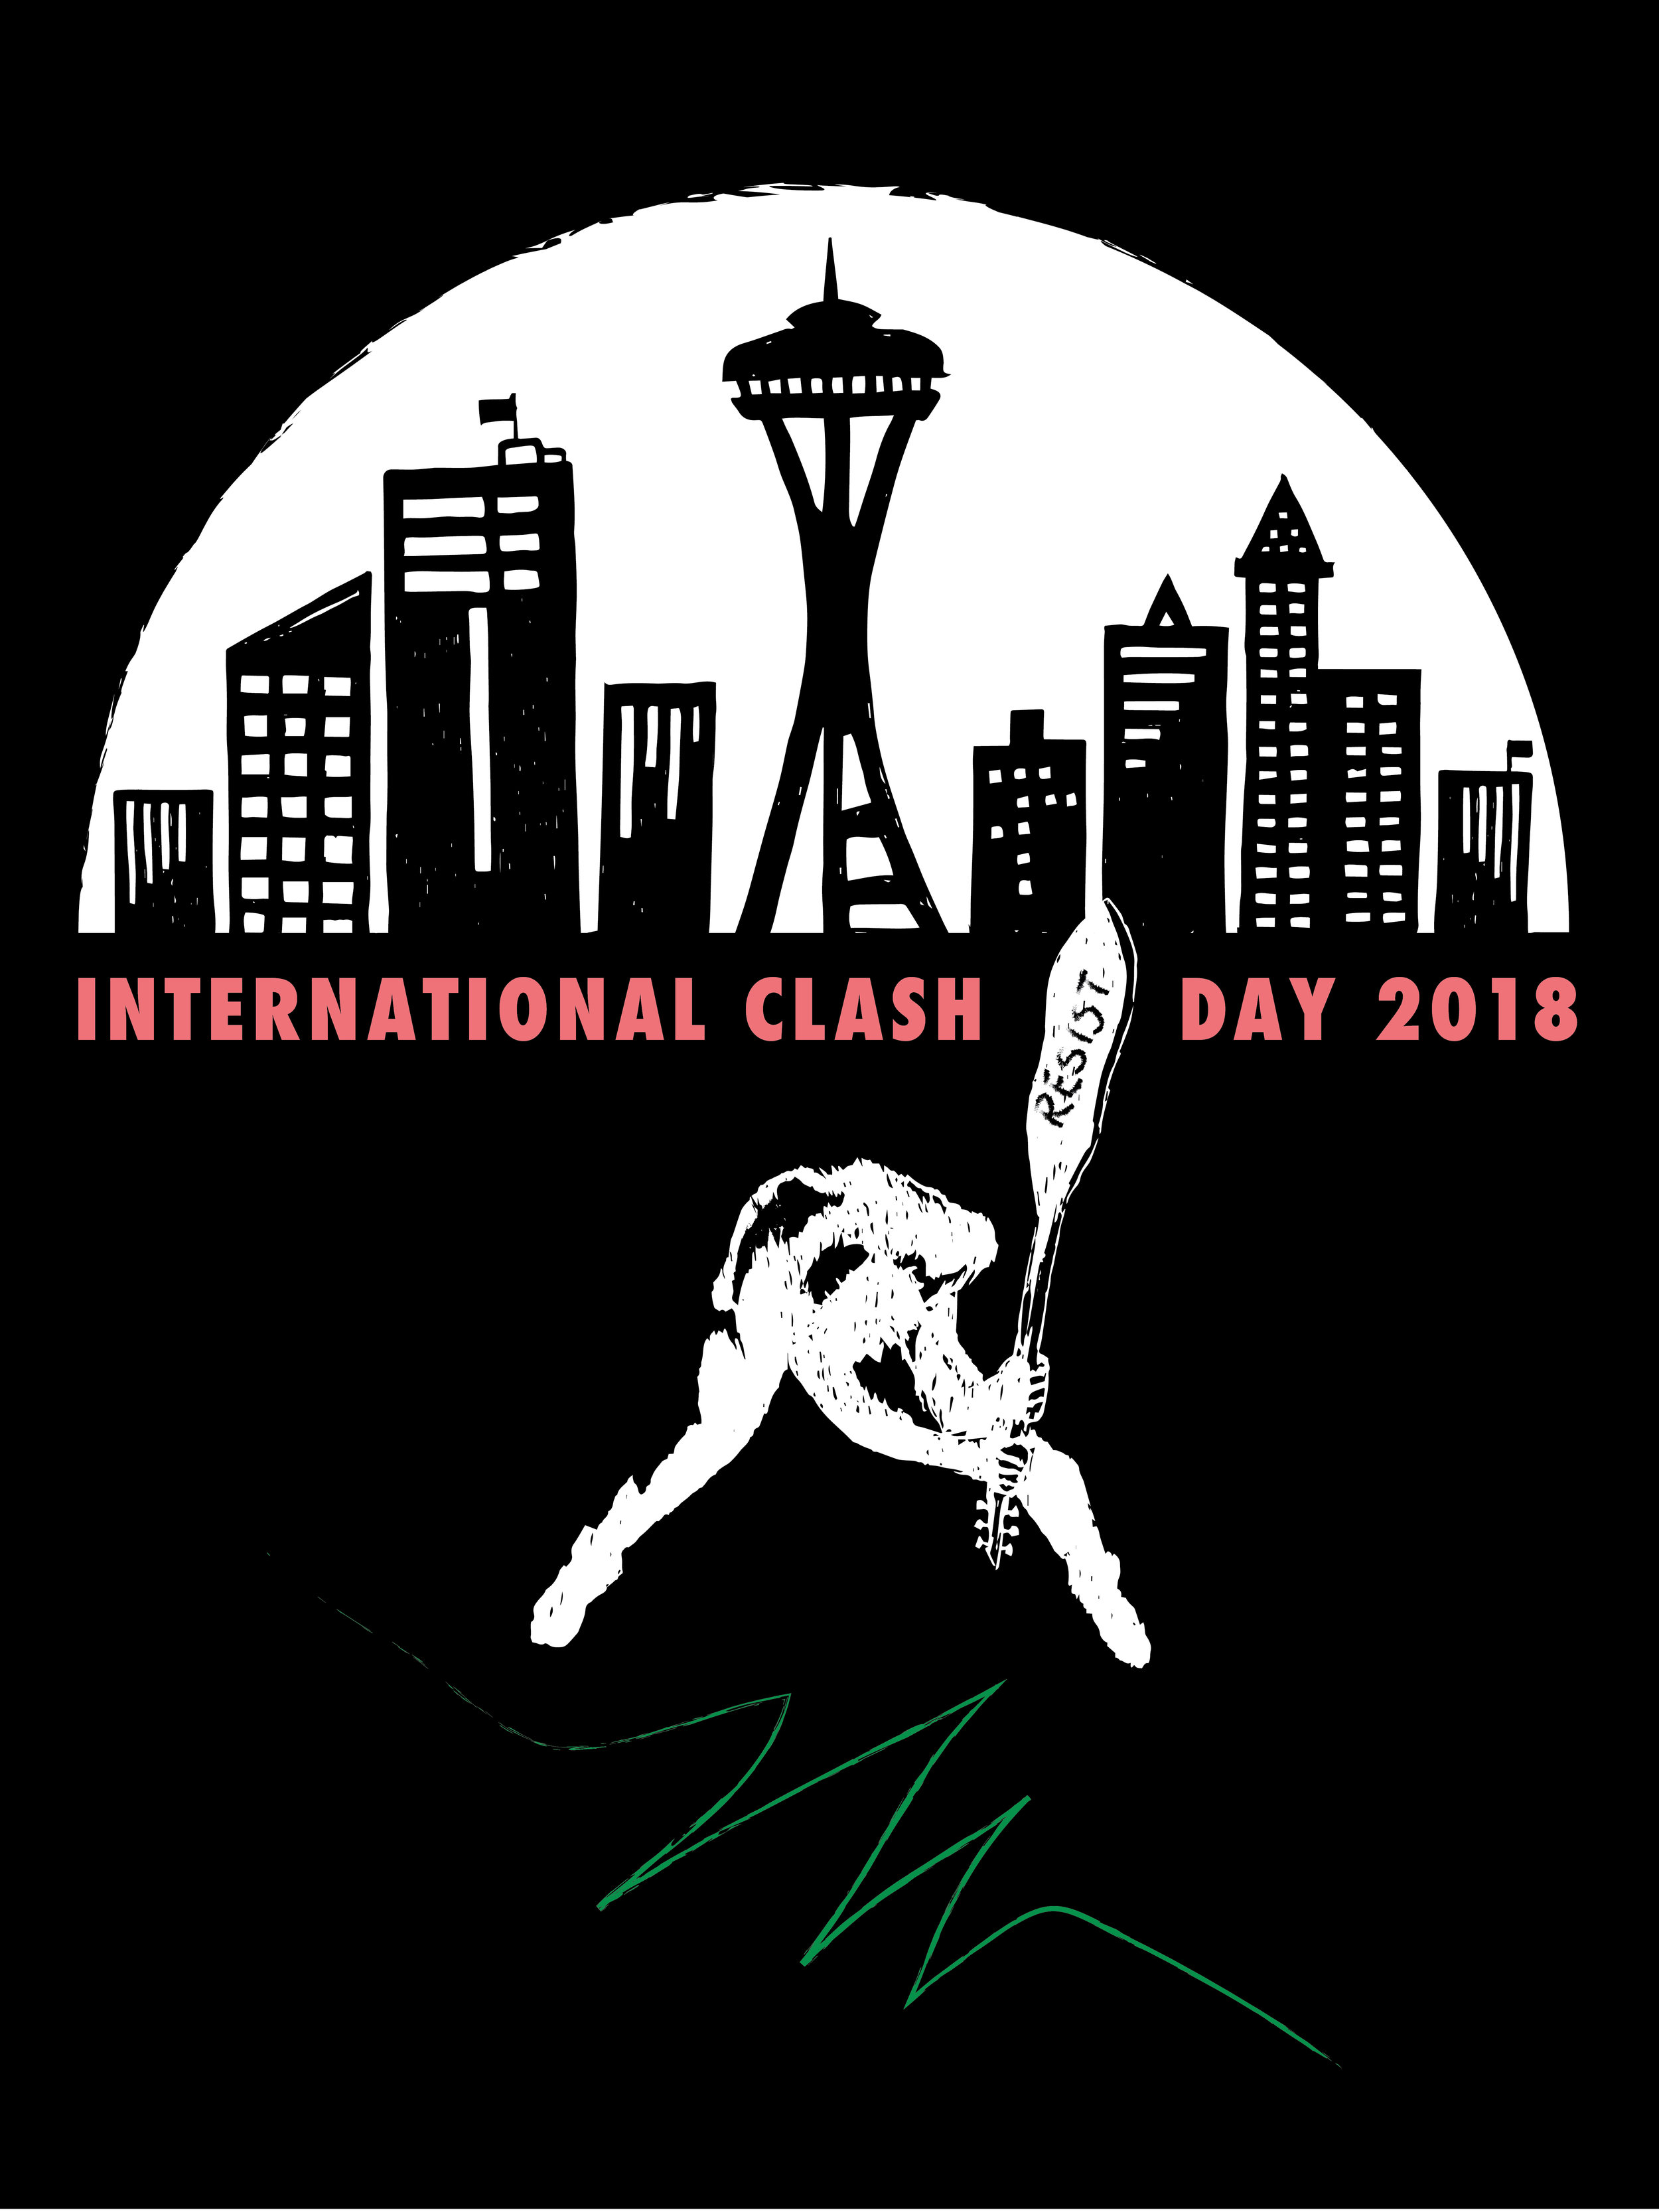 International Clash Day 2018 - I was one of 30 poster artists who participated in KEXP's International Clash Day 2018 on February 7th, 2018. These posters were on display in KEXP's gathering space in February & March 2018.Interested in purchasing this poster? Give me a shout in my